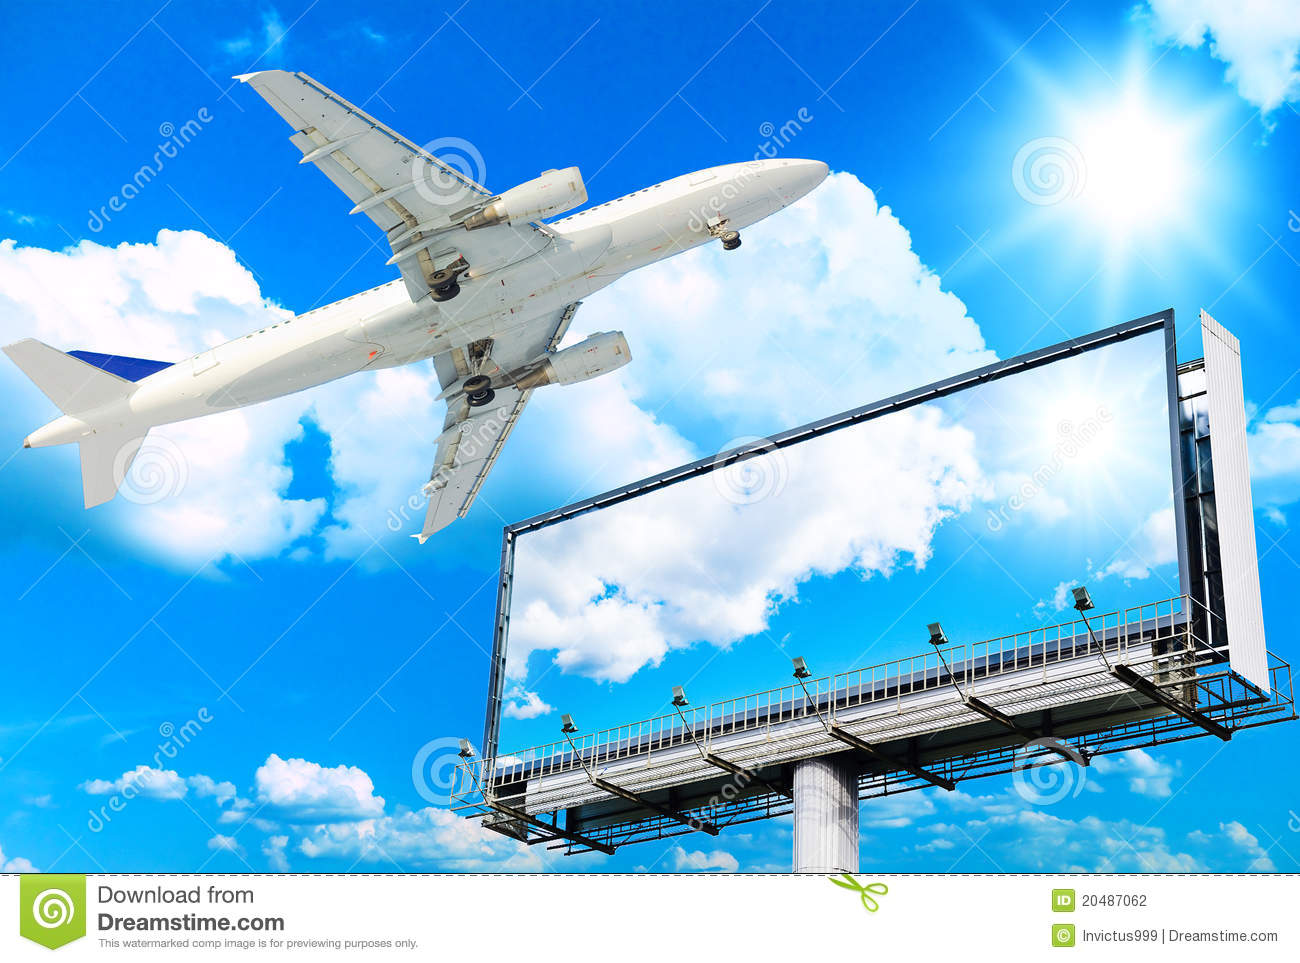 Plane and Giant Poster